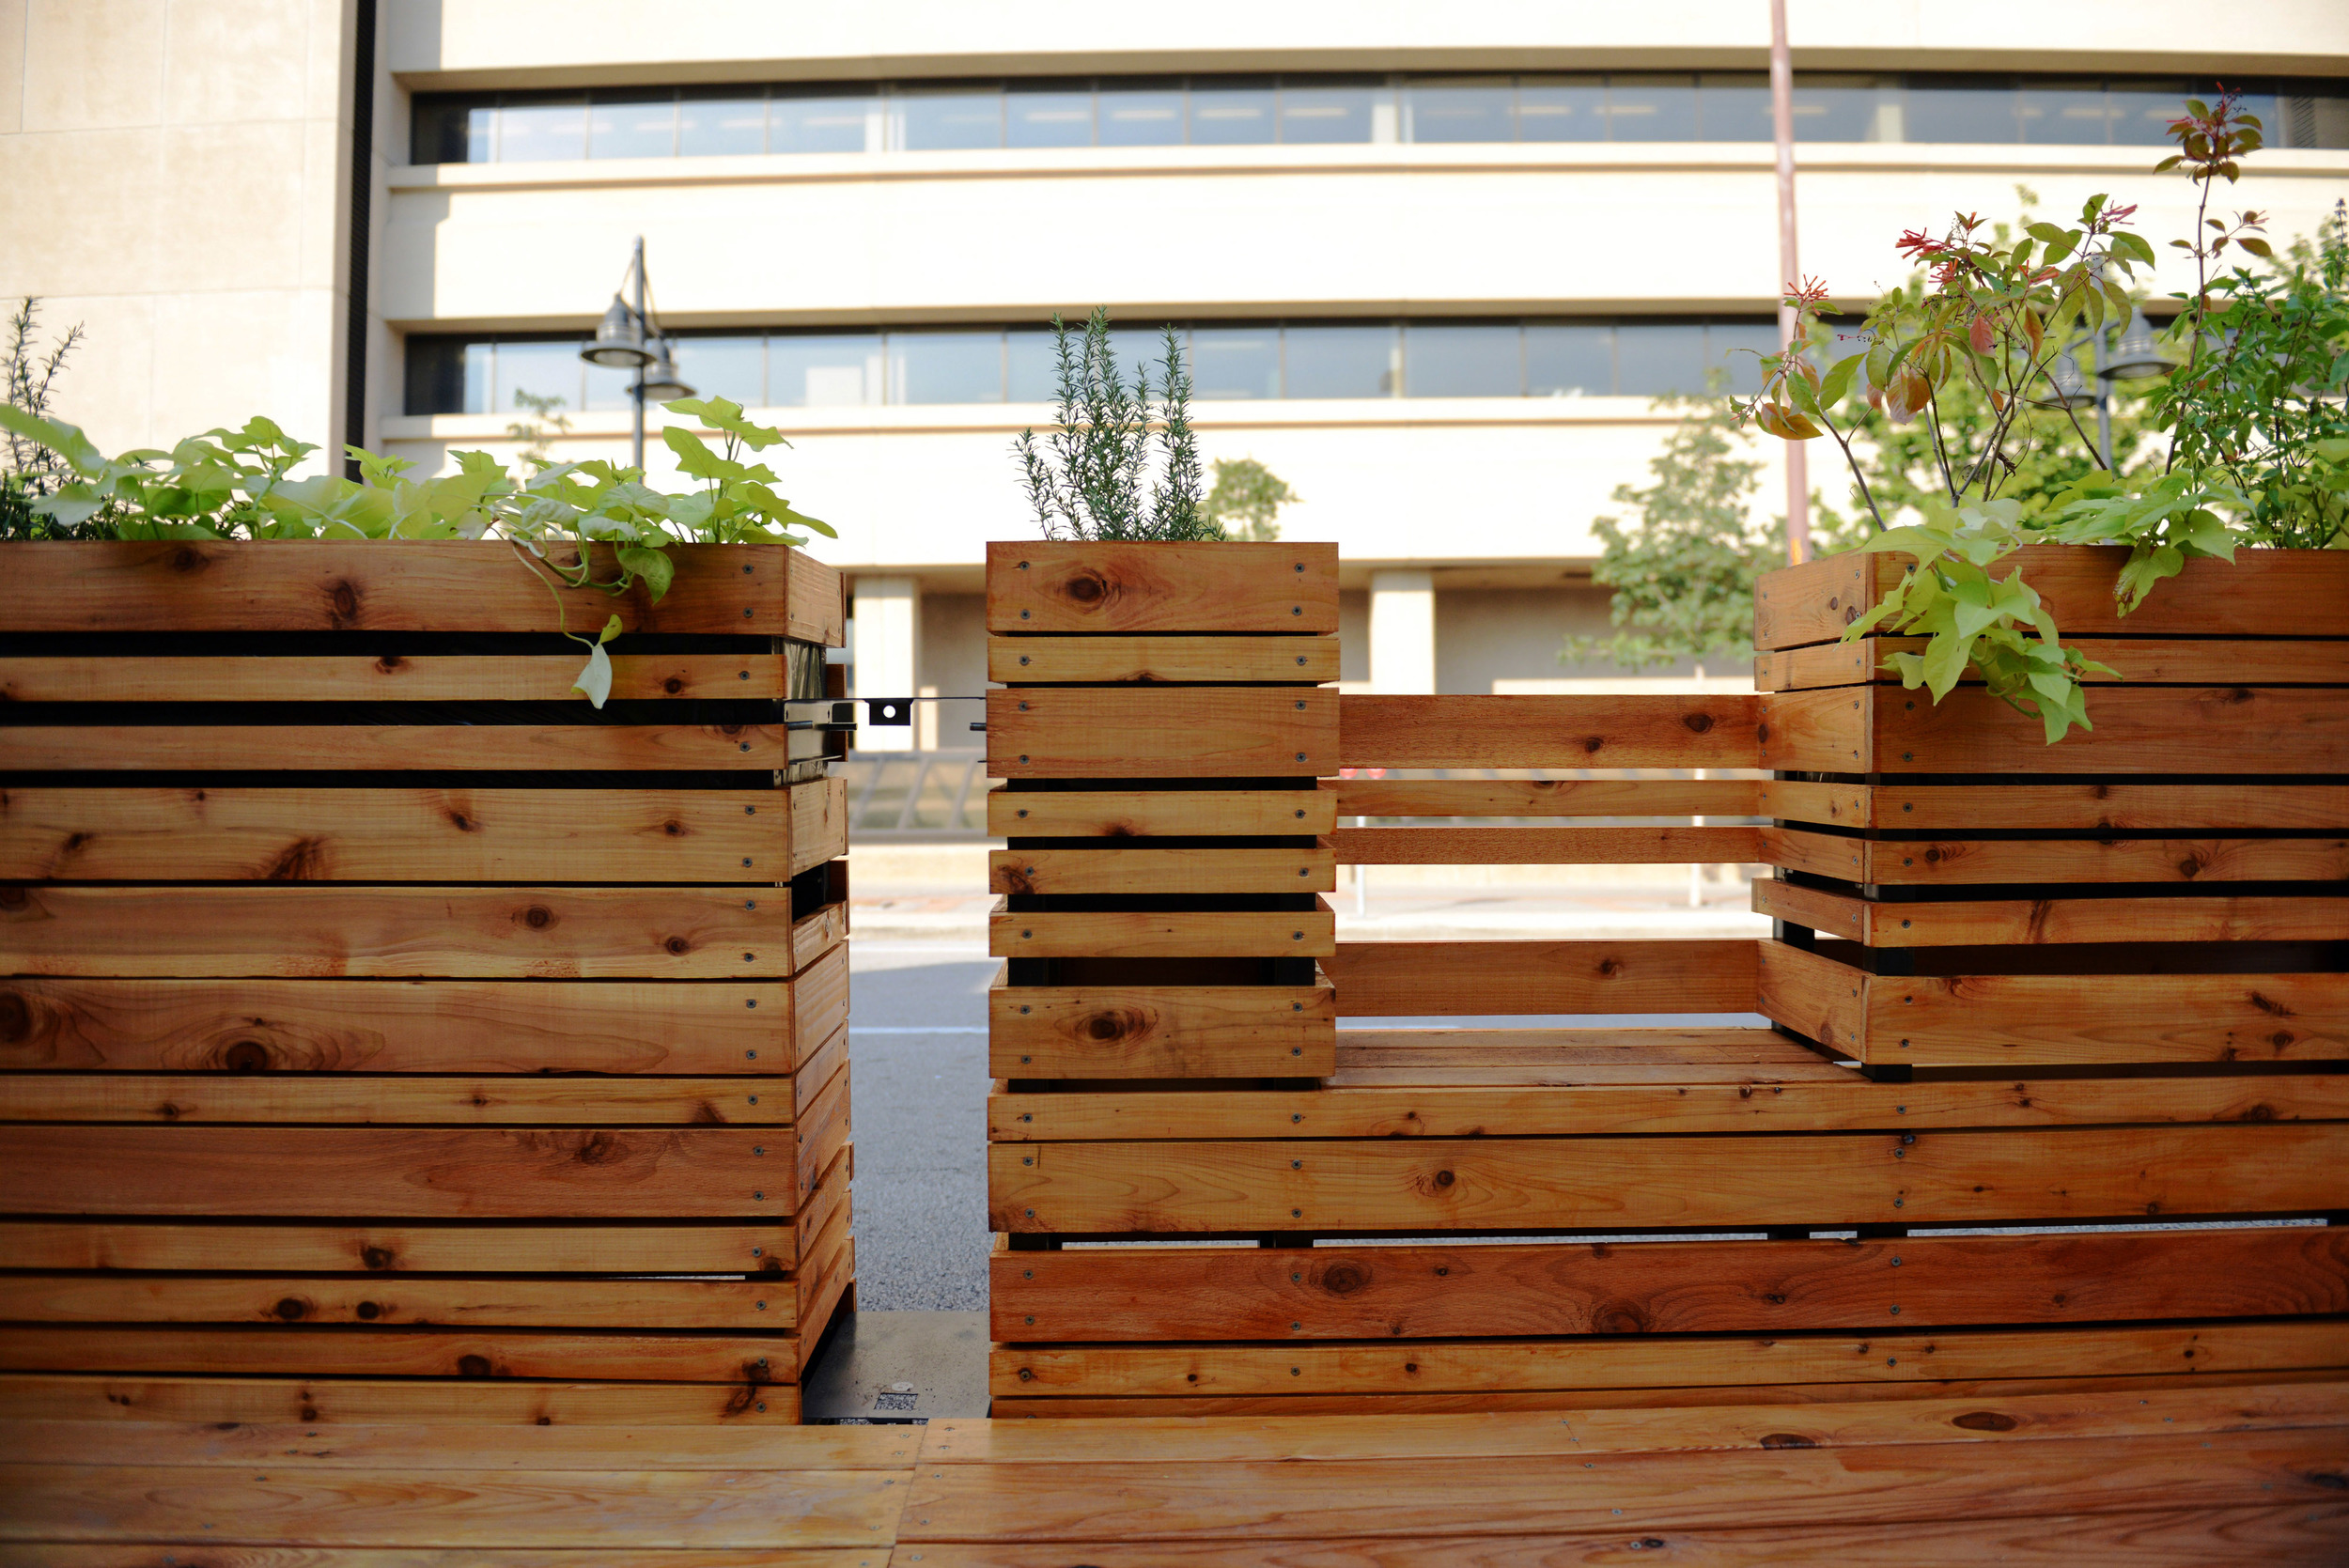 Using natural wood and plants, the parklet softens the city's hardscape.